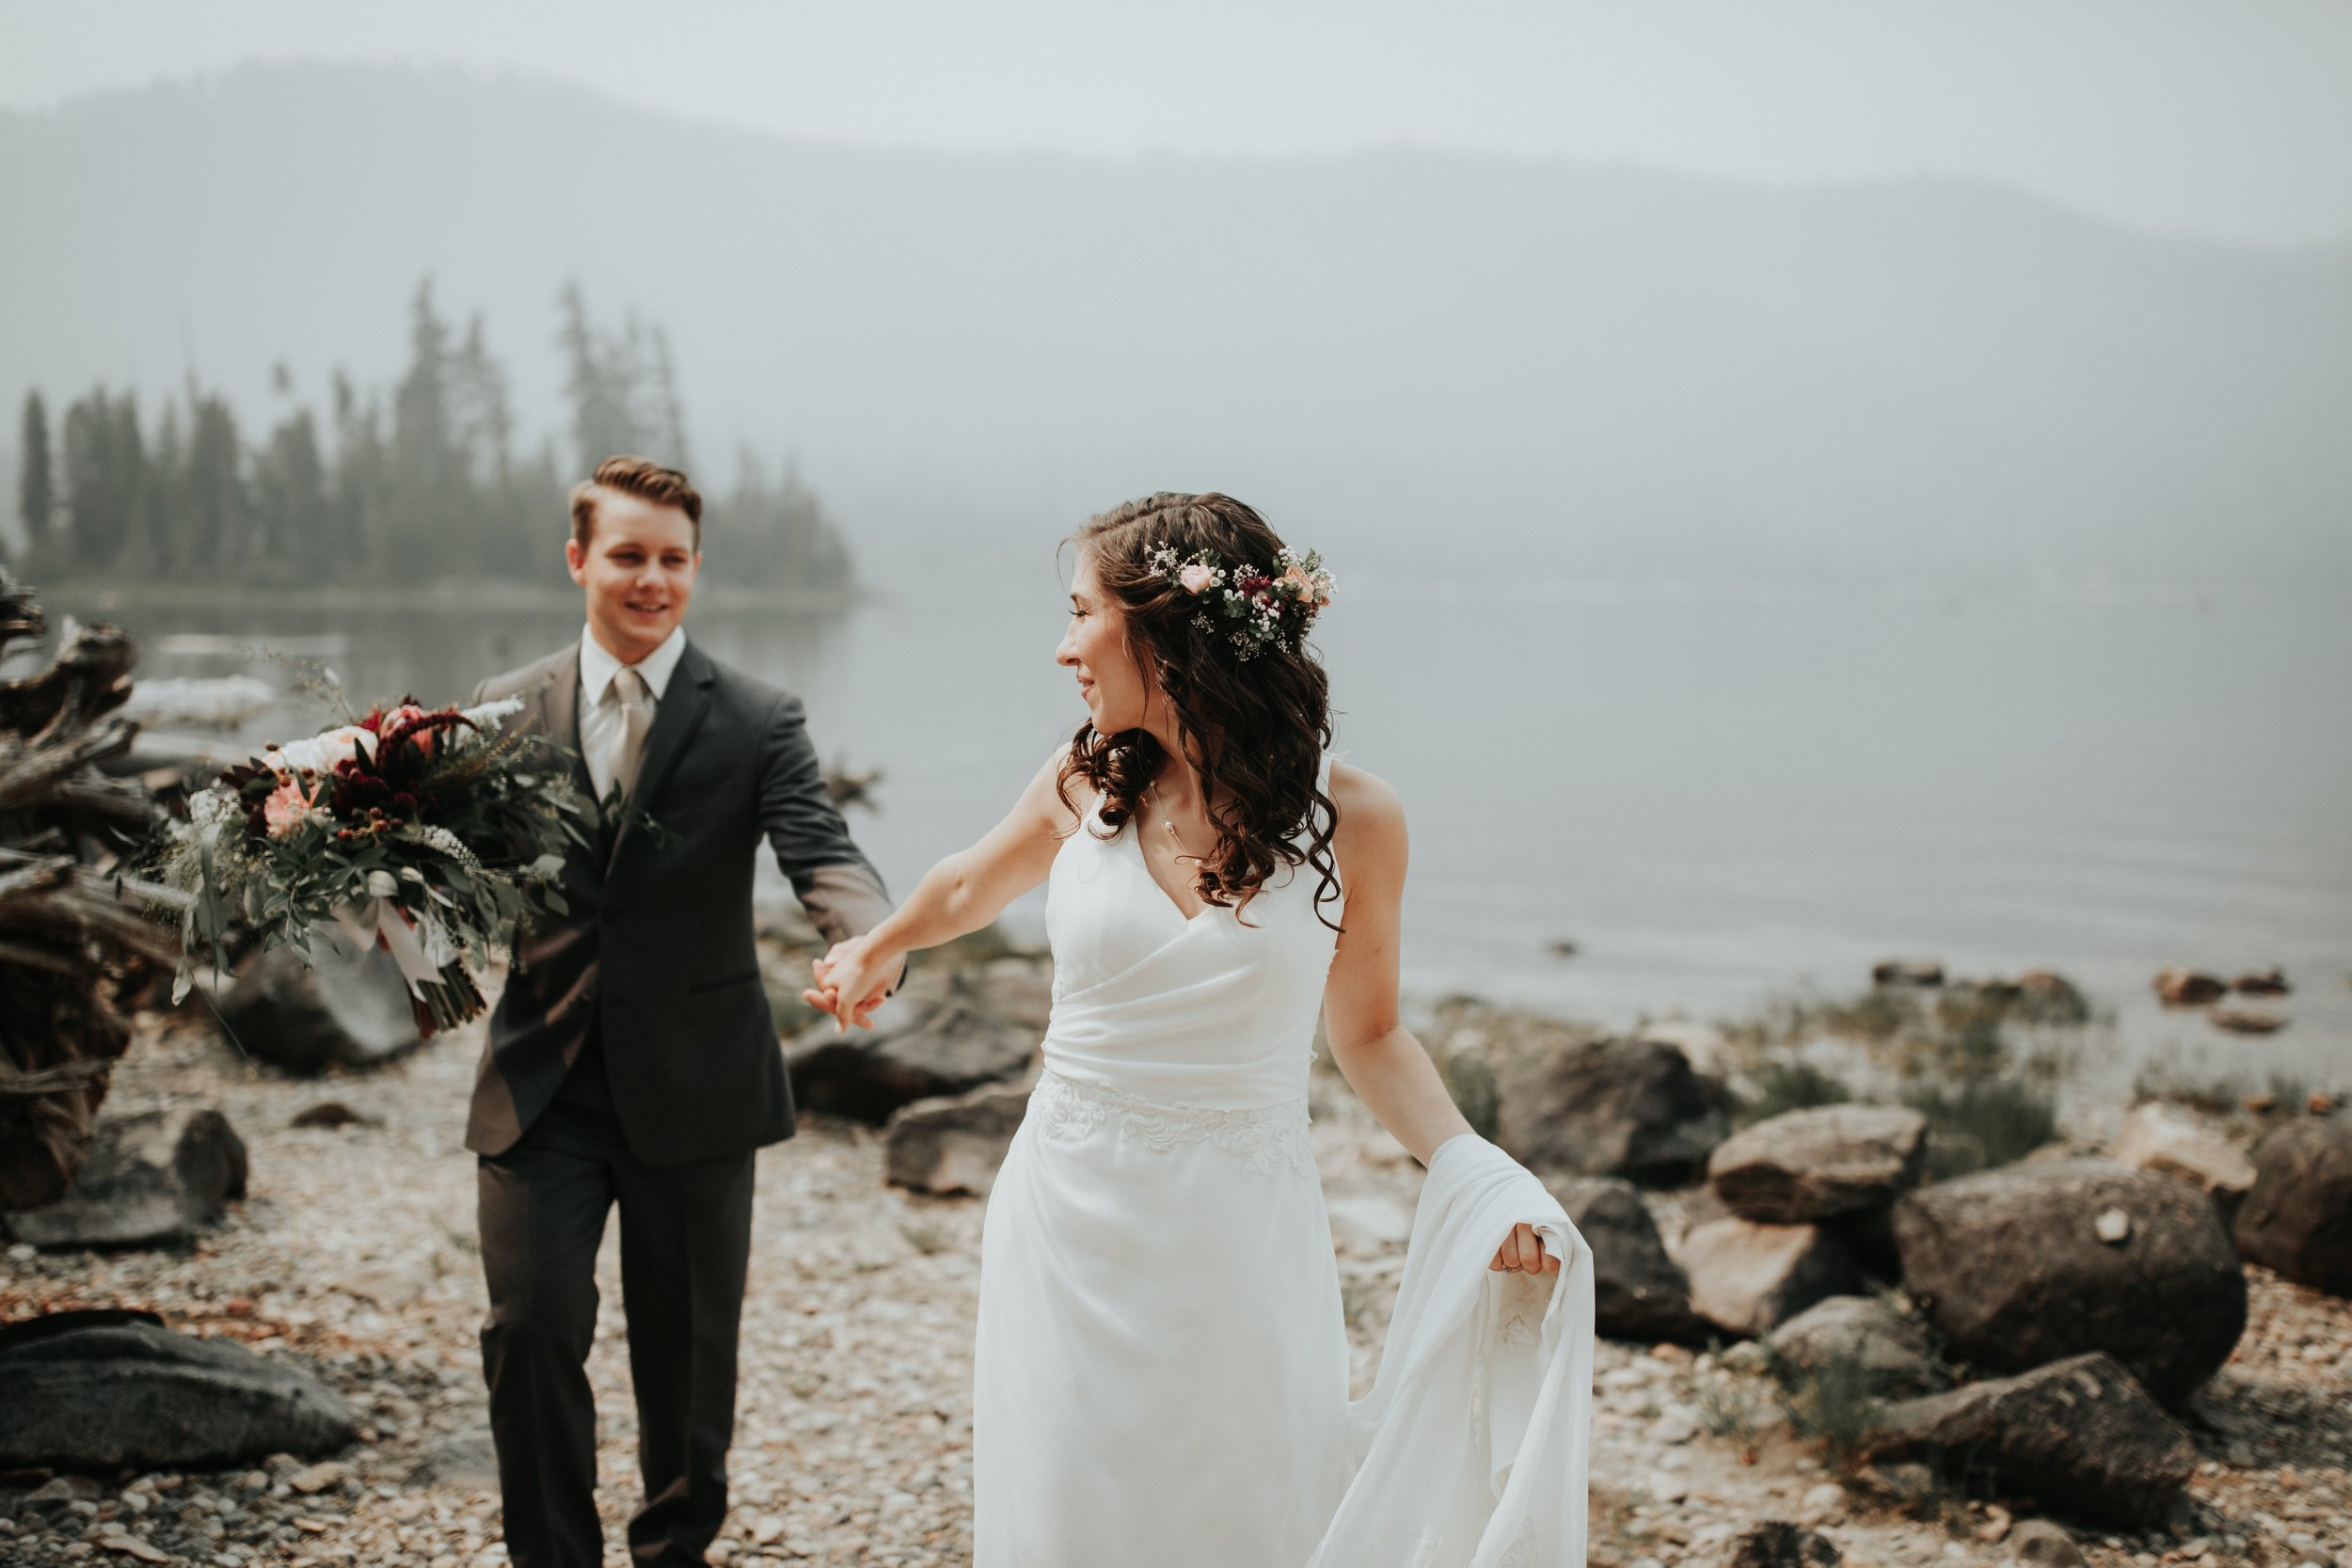 How Social Media Can Ruin Your Wedding Planning